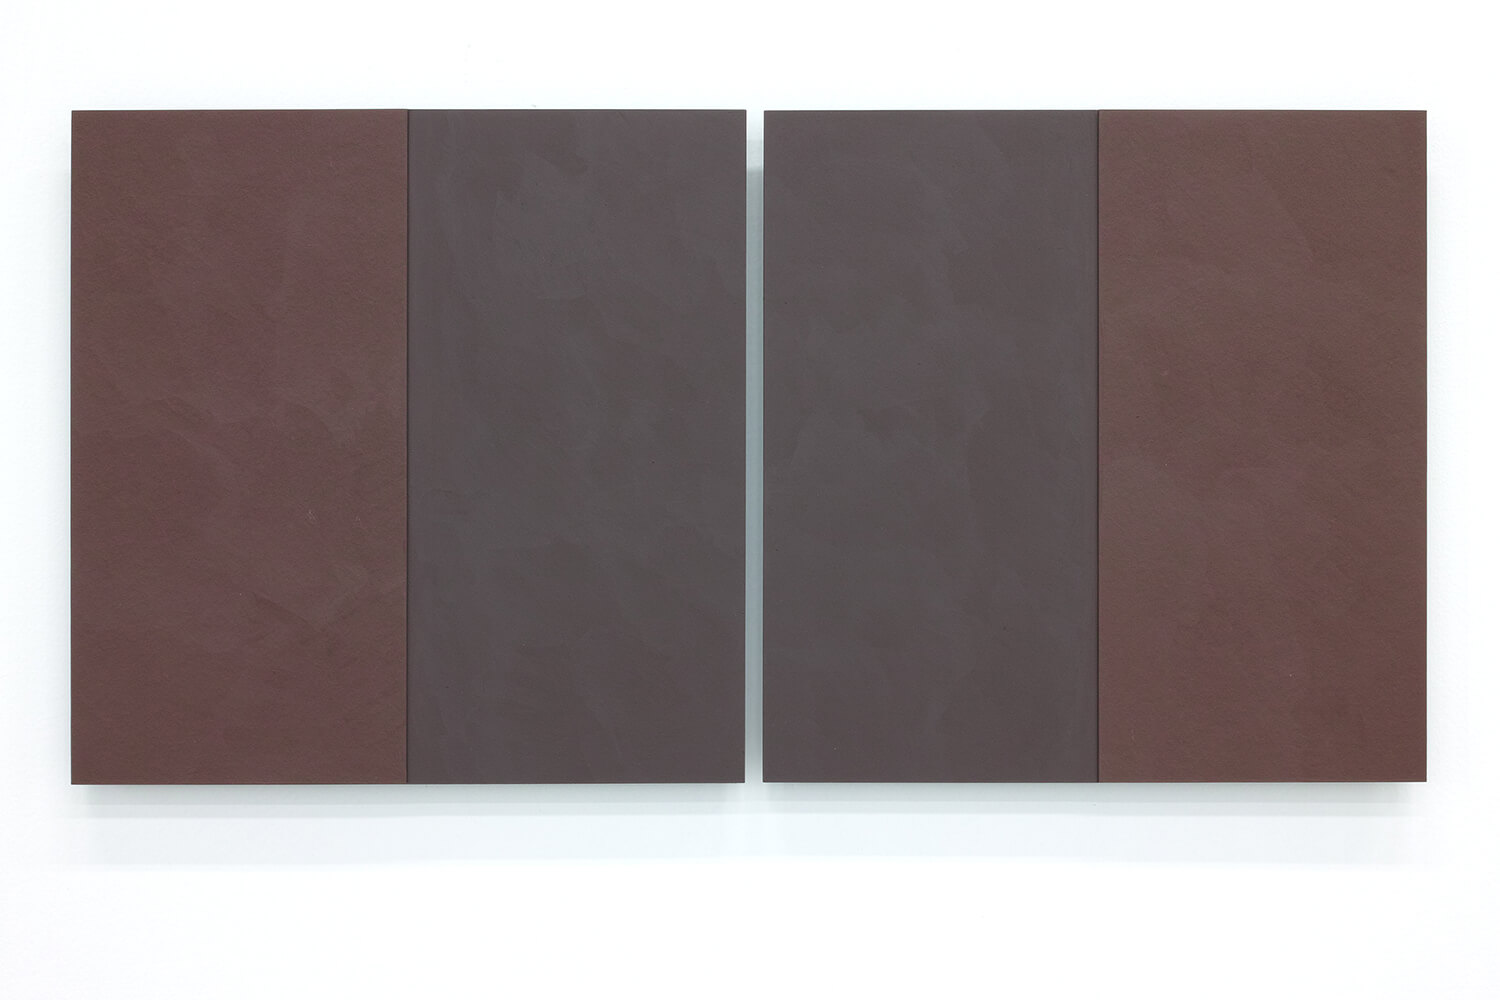 TS1821<br>Colour Gesso on Panel, 30x30cm each, 2018